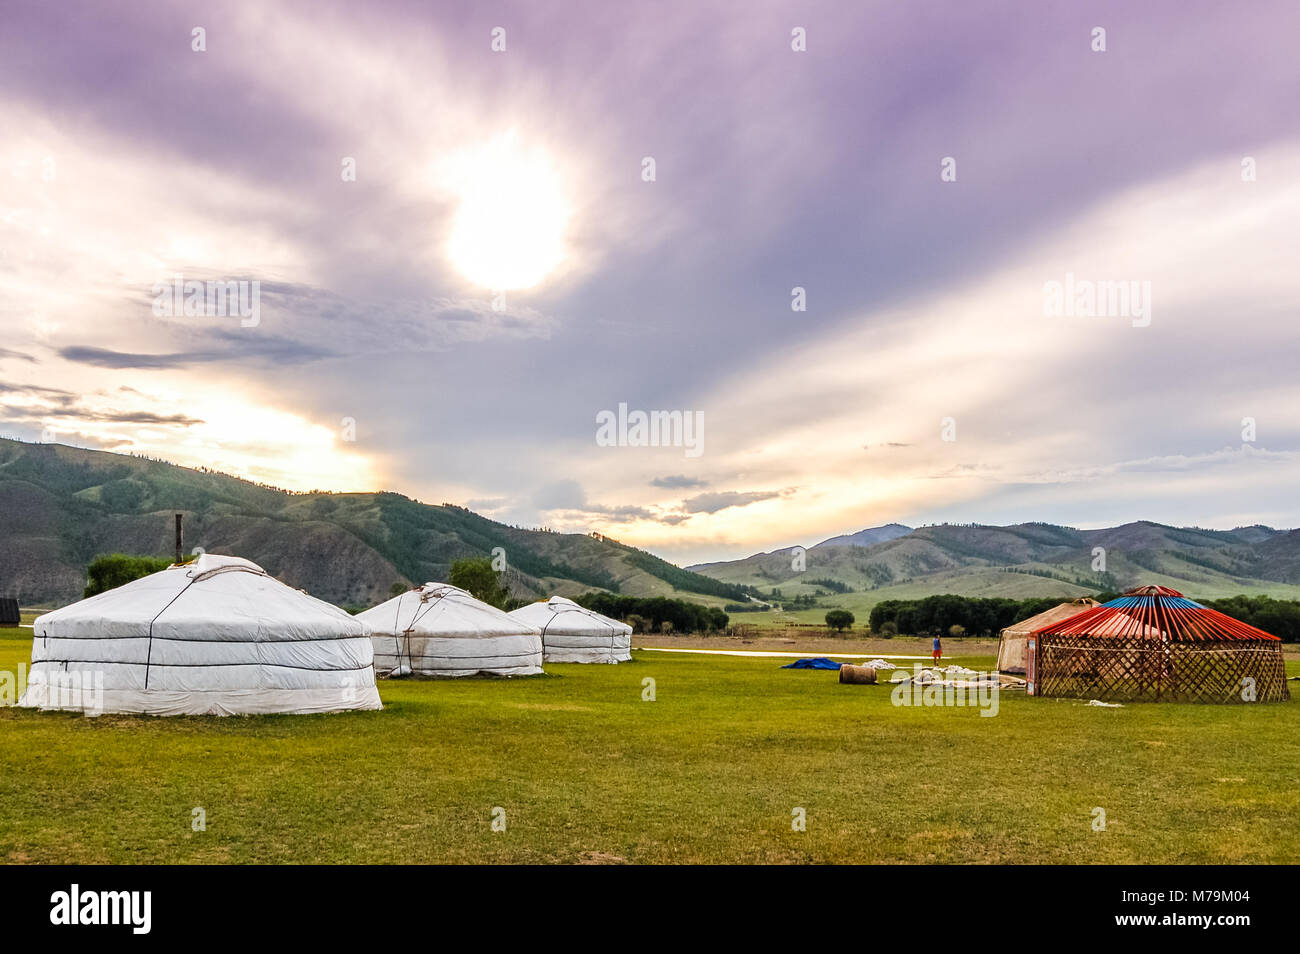 Constructing a Mongolian yurt called a ger on central Mongolian steppe - Stock Image